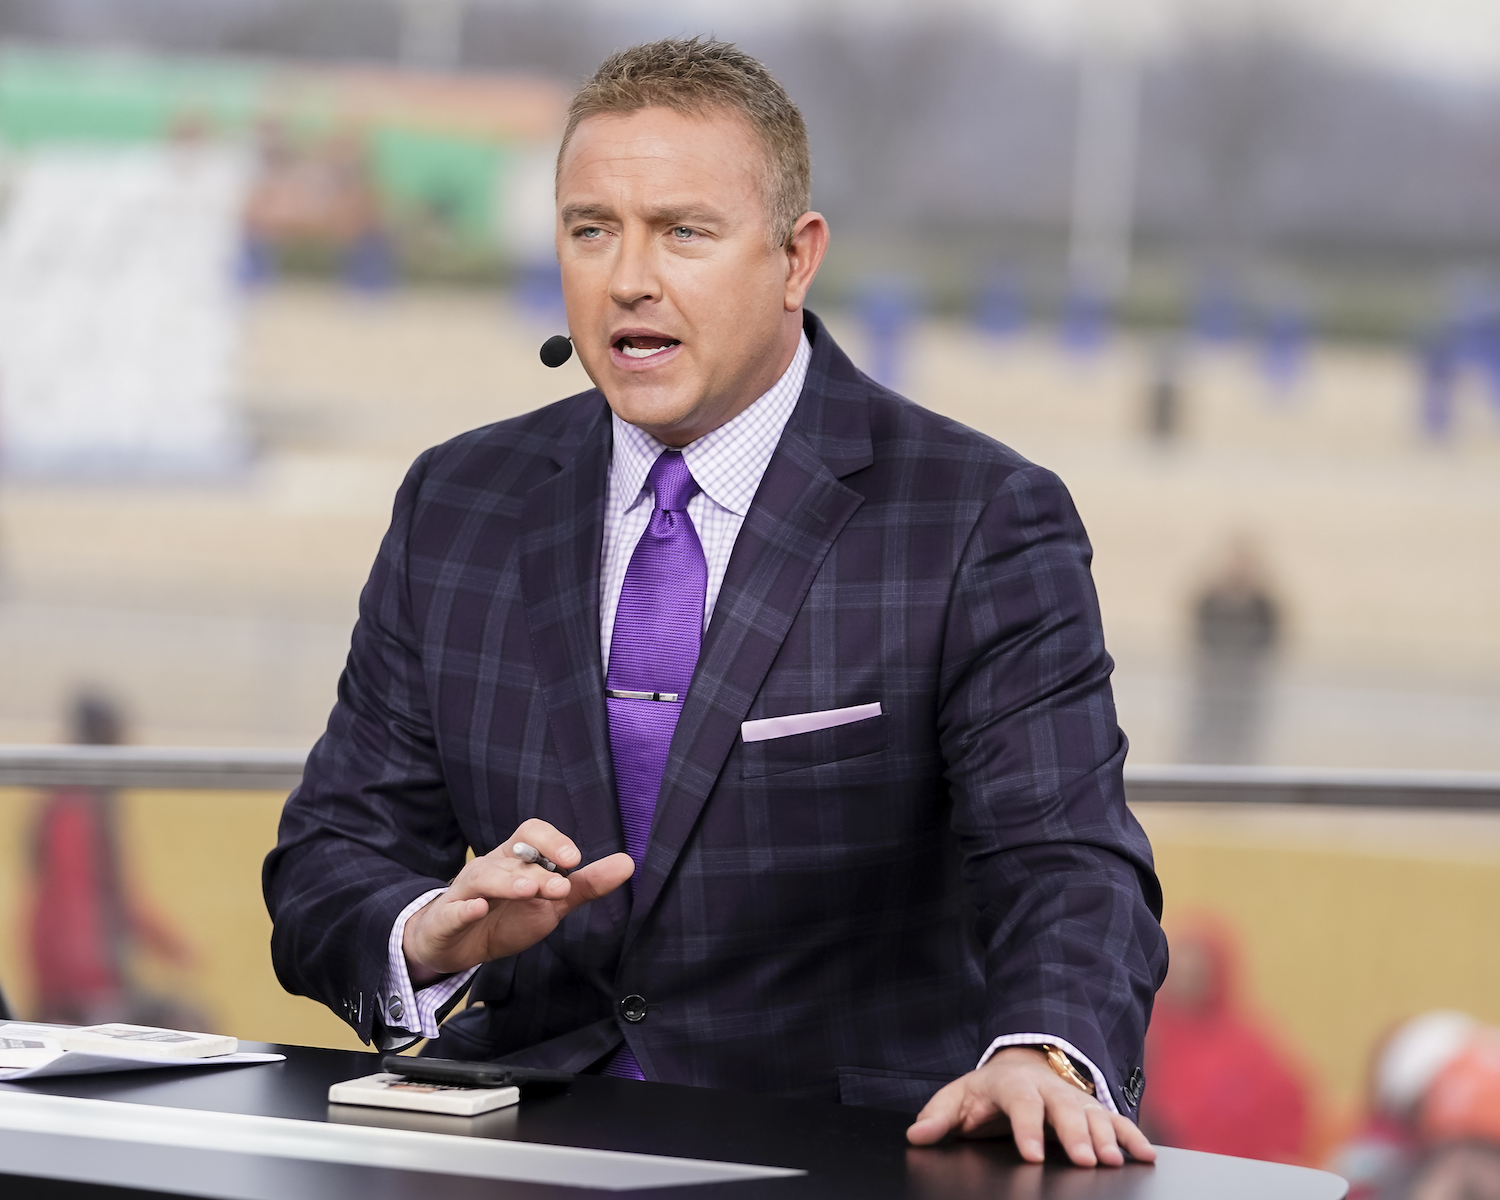 Kirk Herbstreit at ESPN College GameDay